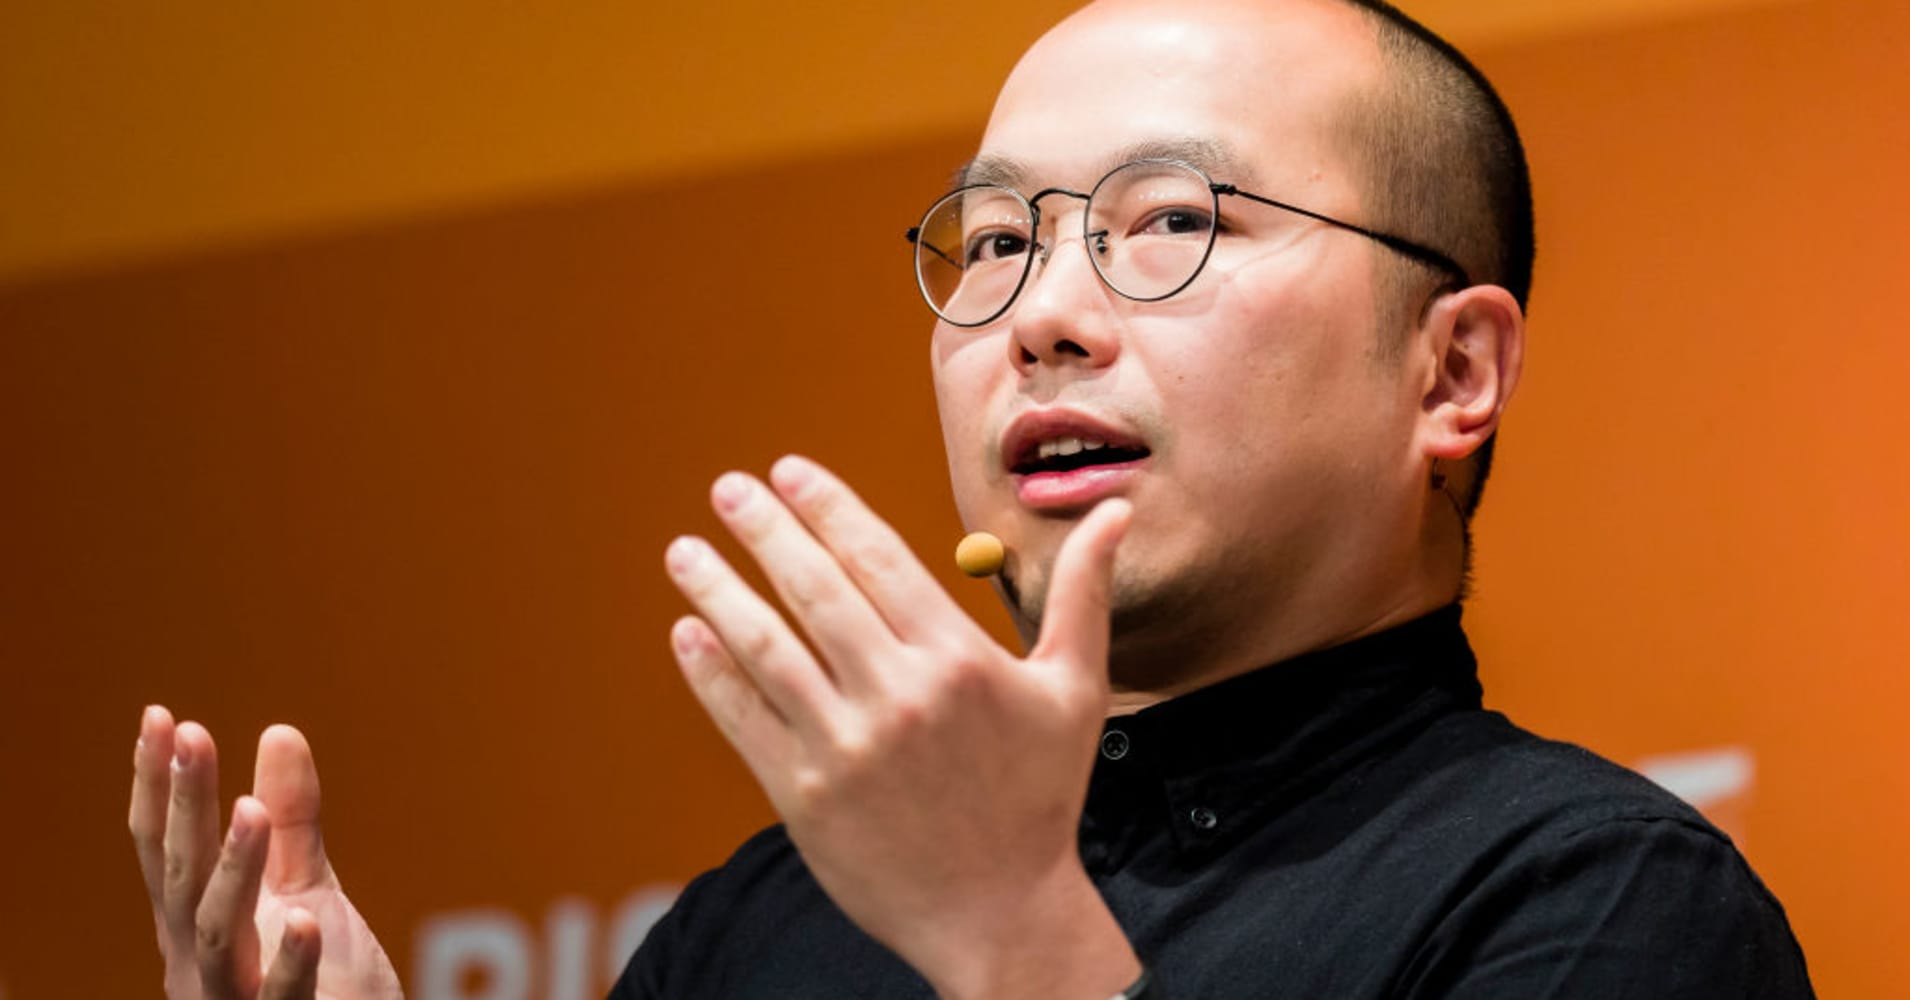 Silicon Valley taught me this secret about great business ideas, says Hong Kong entrepreneur